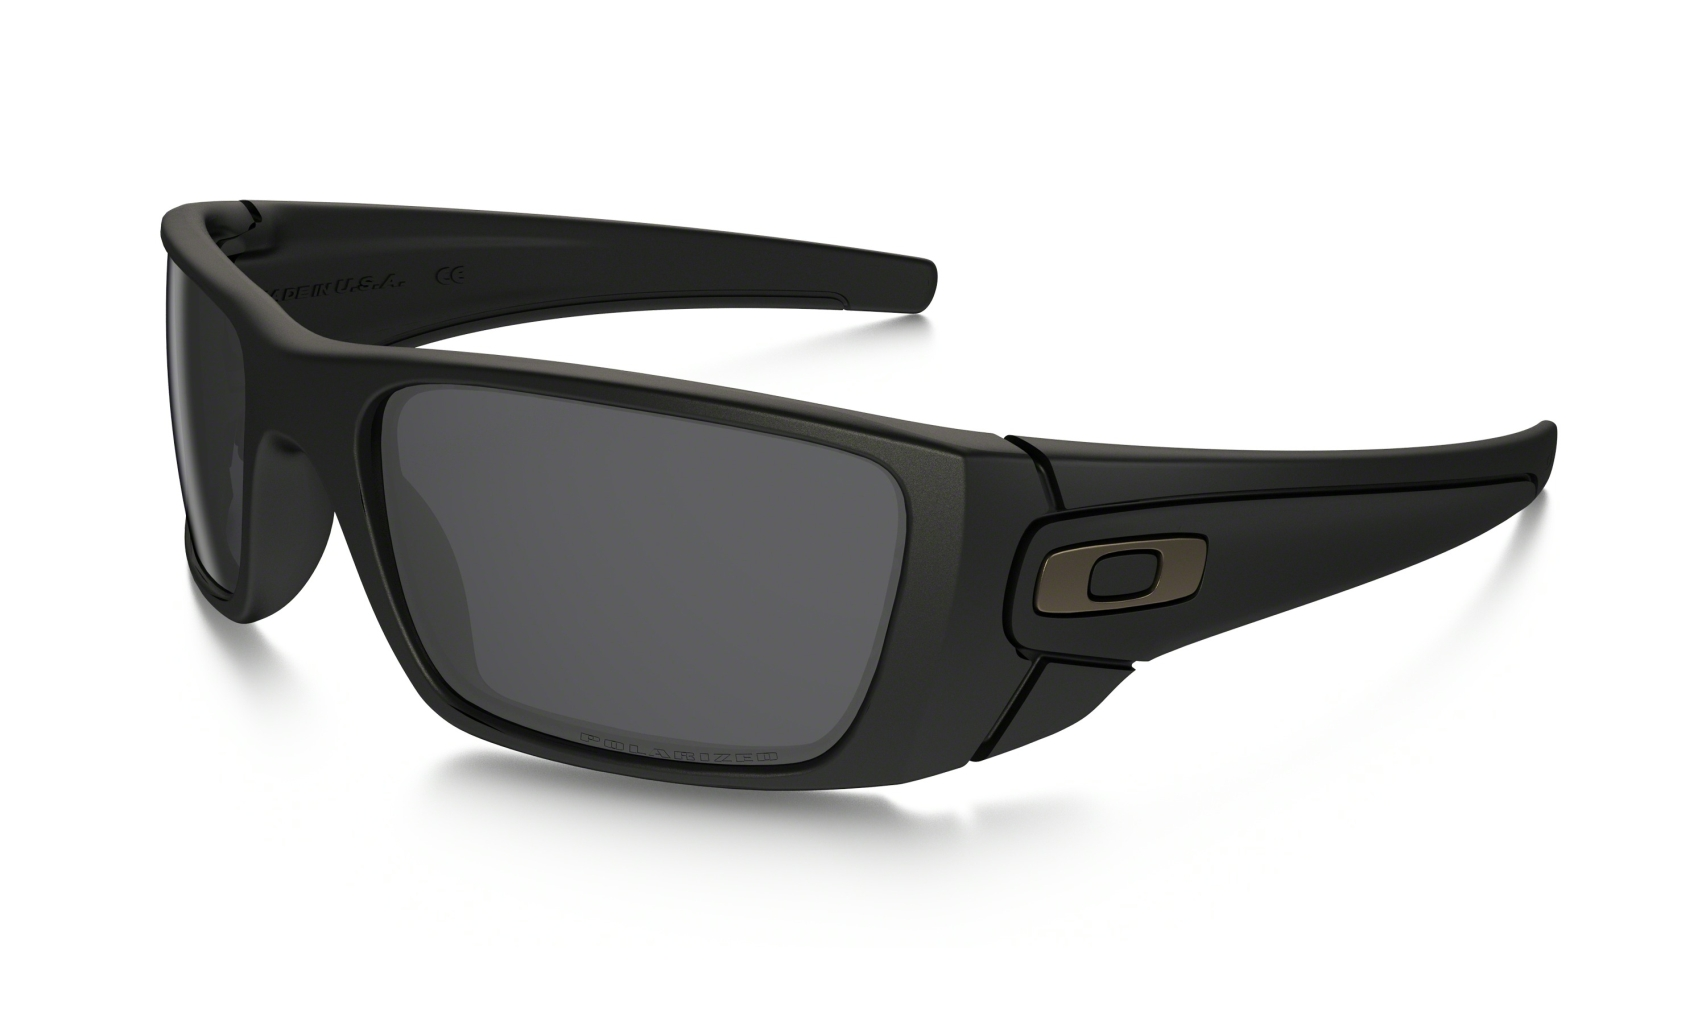 ace880d592 Oakley Ten Polished Black Black Iridium Polarized Oo9128 05 ...